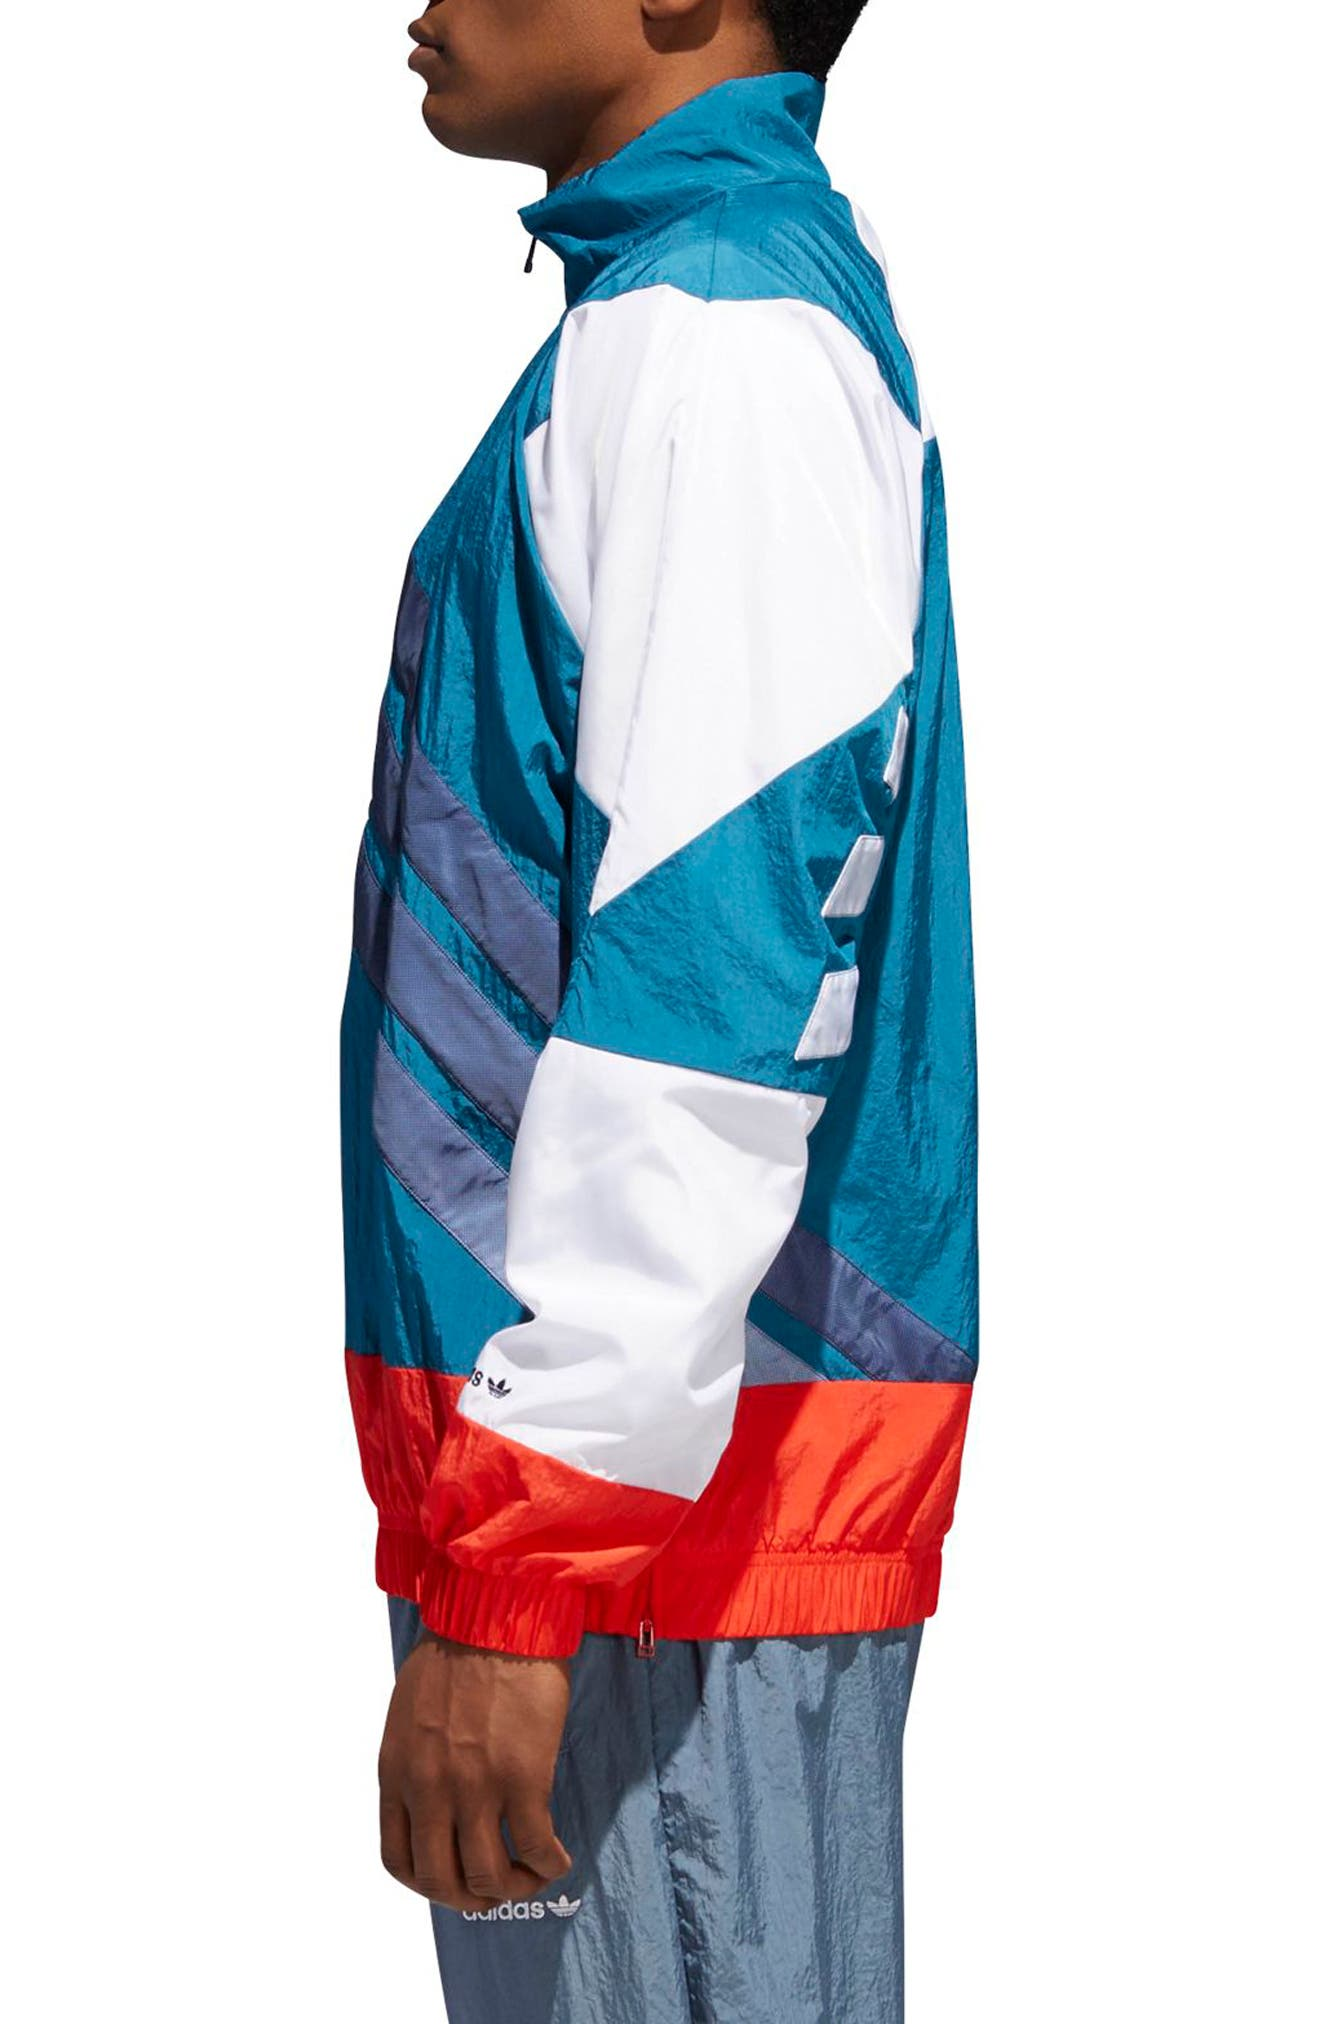 V Stripes Windbreaker,                             Alternate thumbnail 3, color,                             Hii Res Red